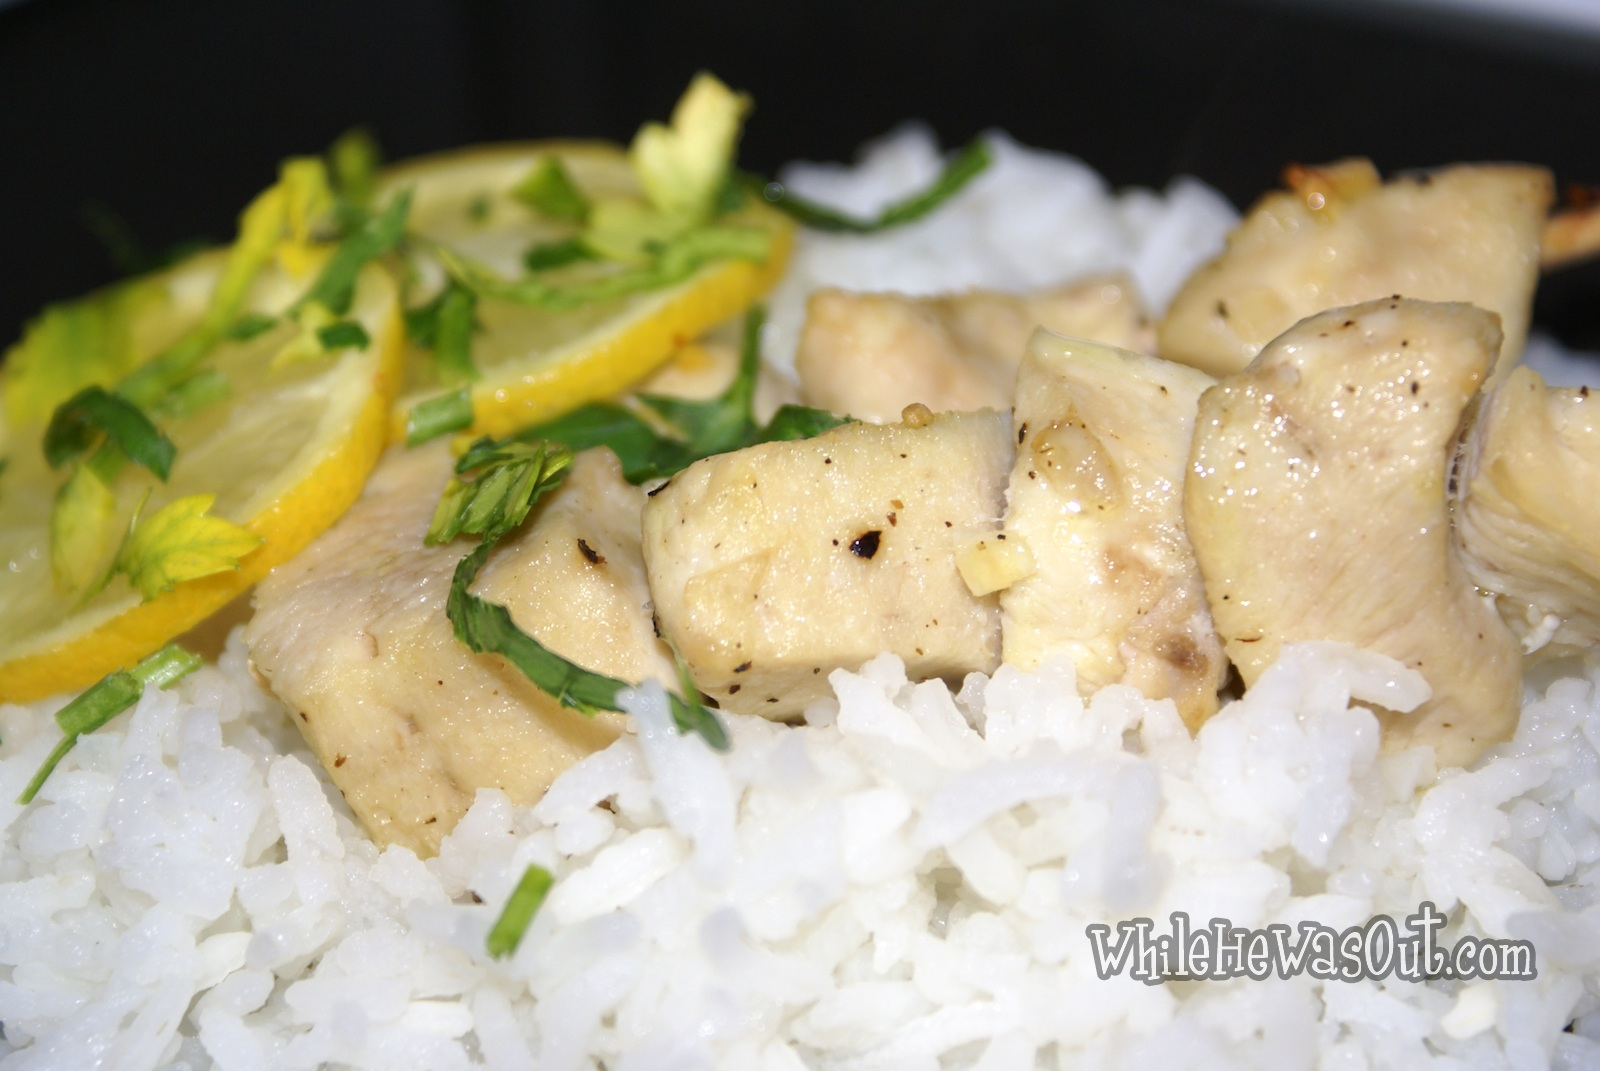 Lemon-Garlic Chicken Skewers | While He Was Out